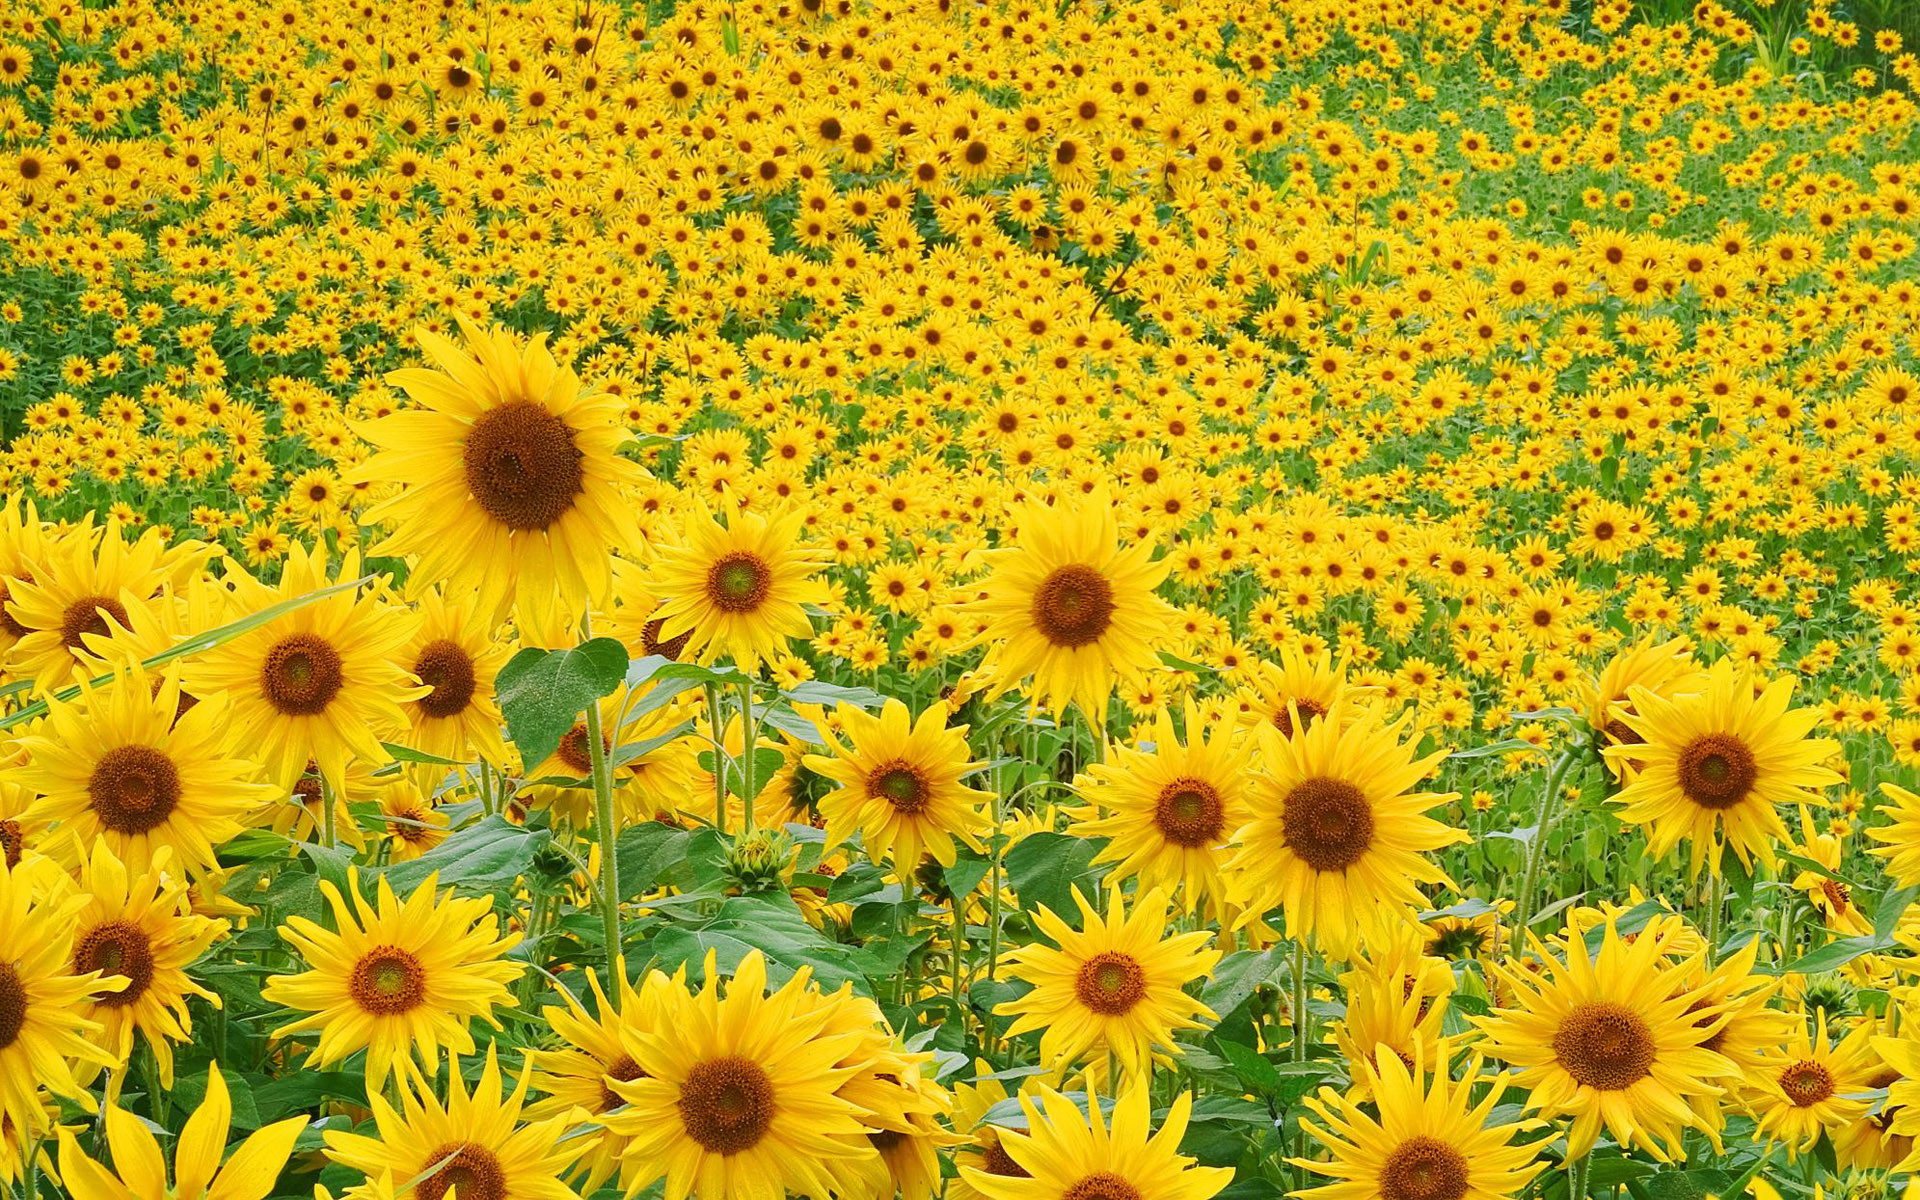 Sunflower Field 443.1 Kb